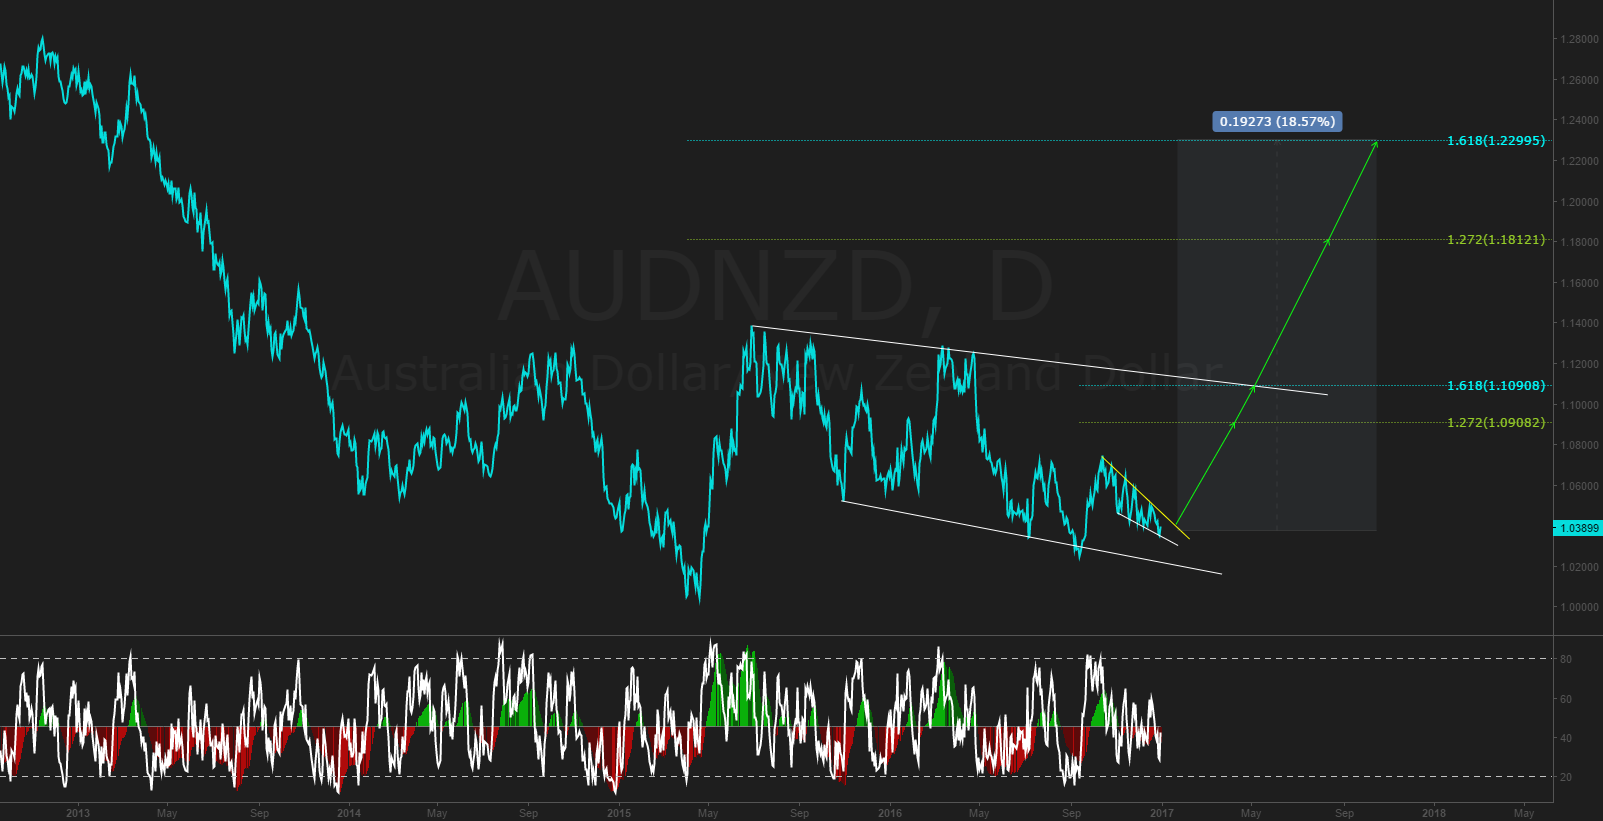 NEW YEARS RESOLUTION: catch 2000 pips on AUDNZD